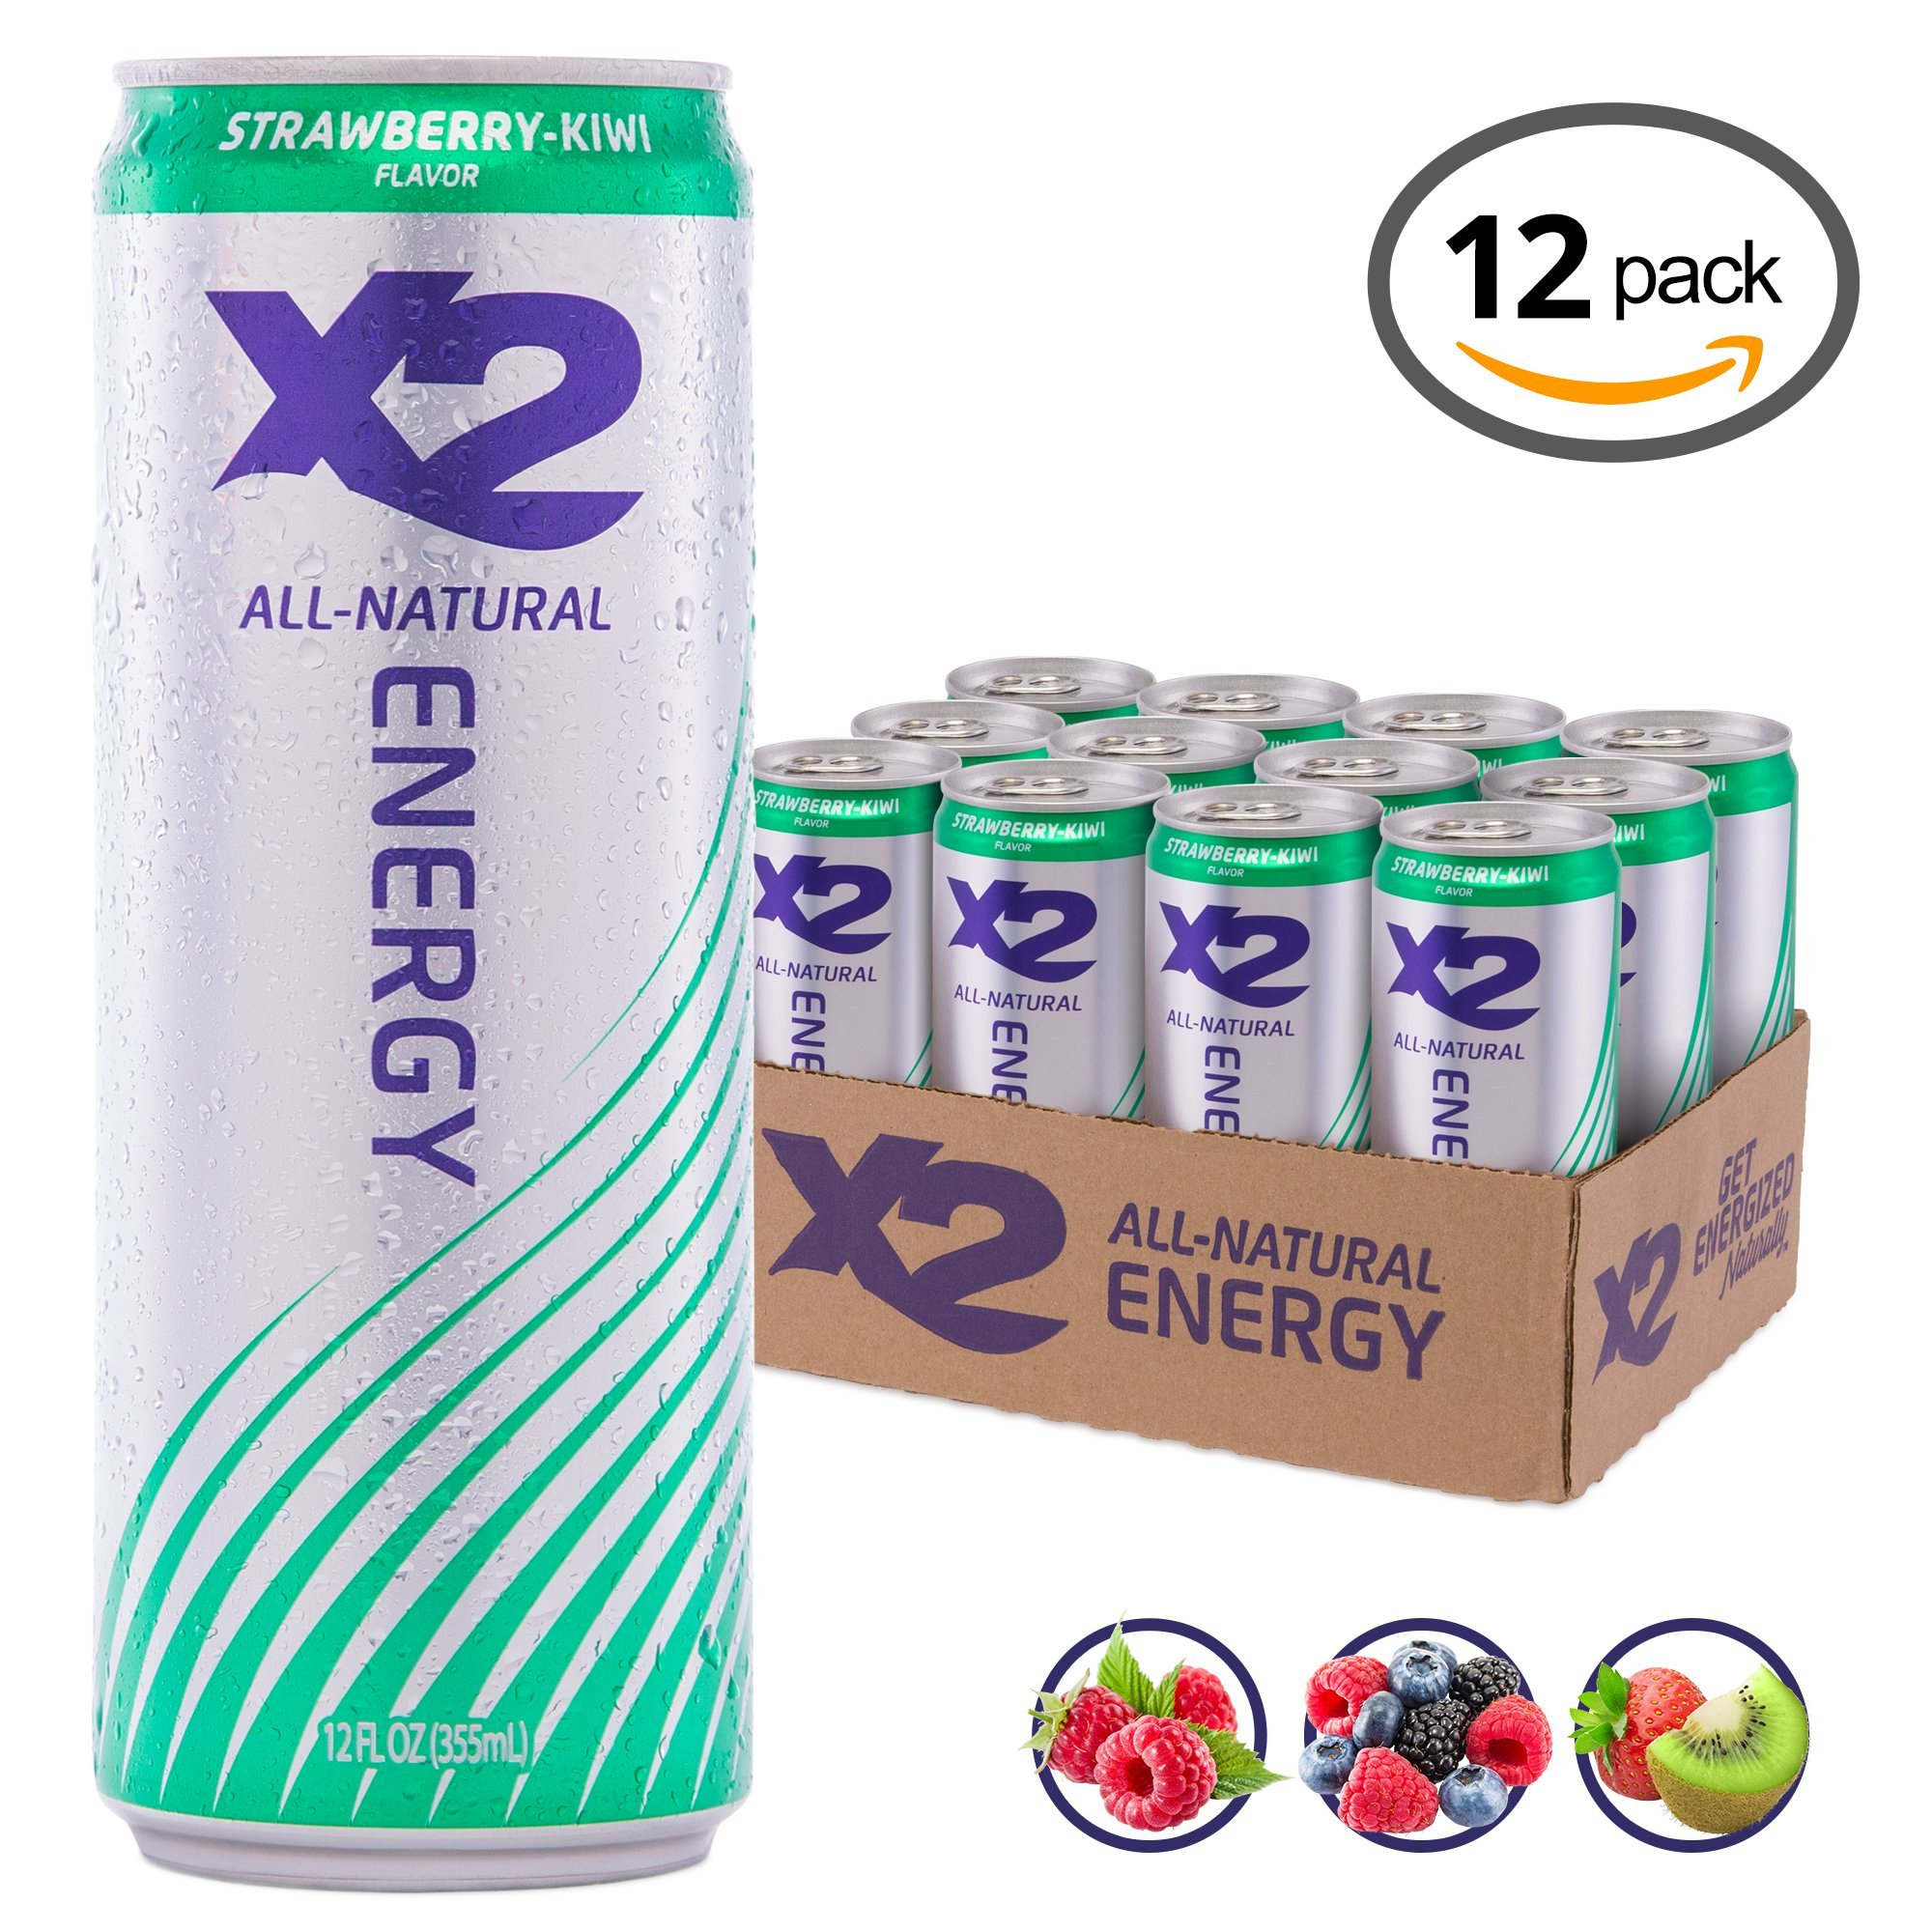 X2 All Natural Healthy Energy Drink: Great Tasting Non-Carbonated Energy Beverage with No